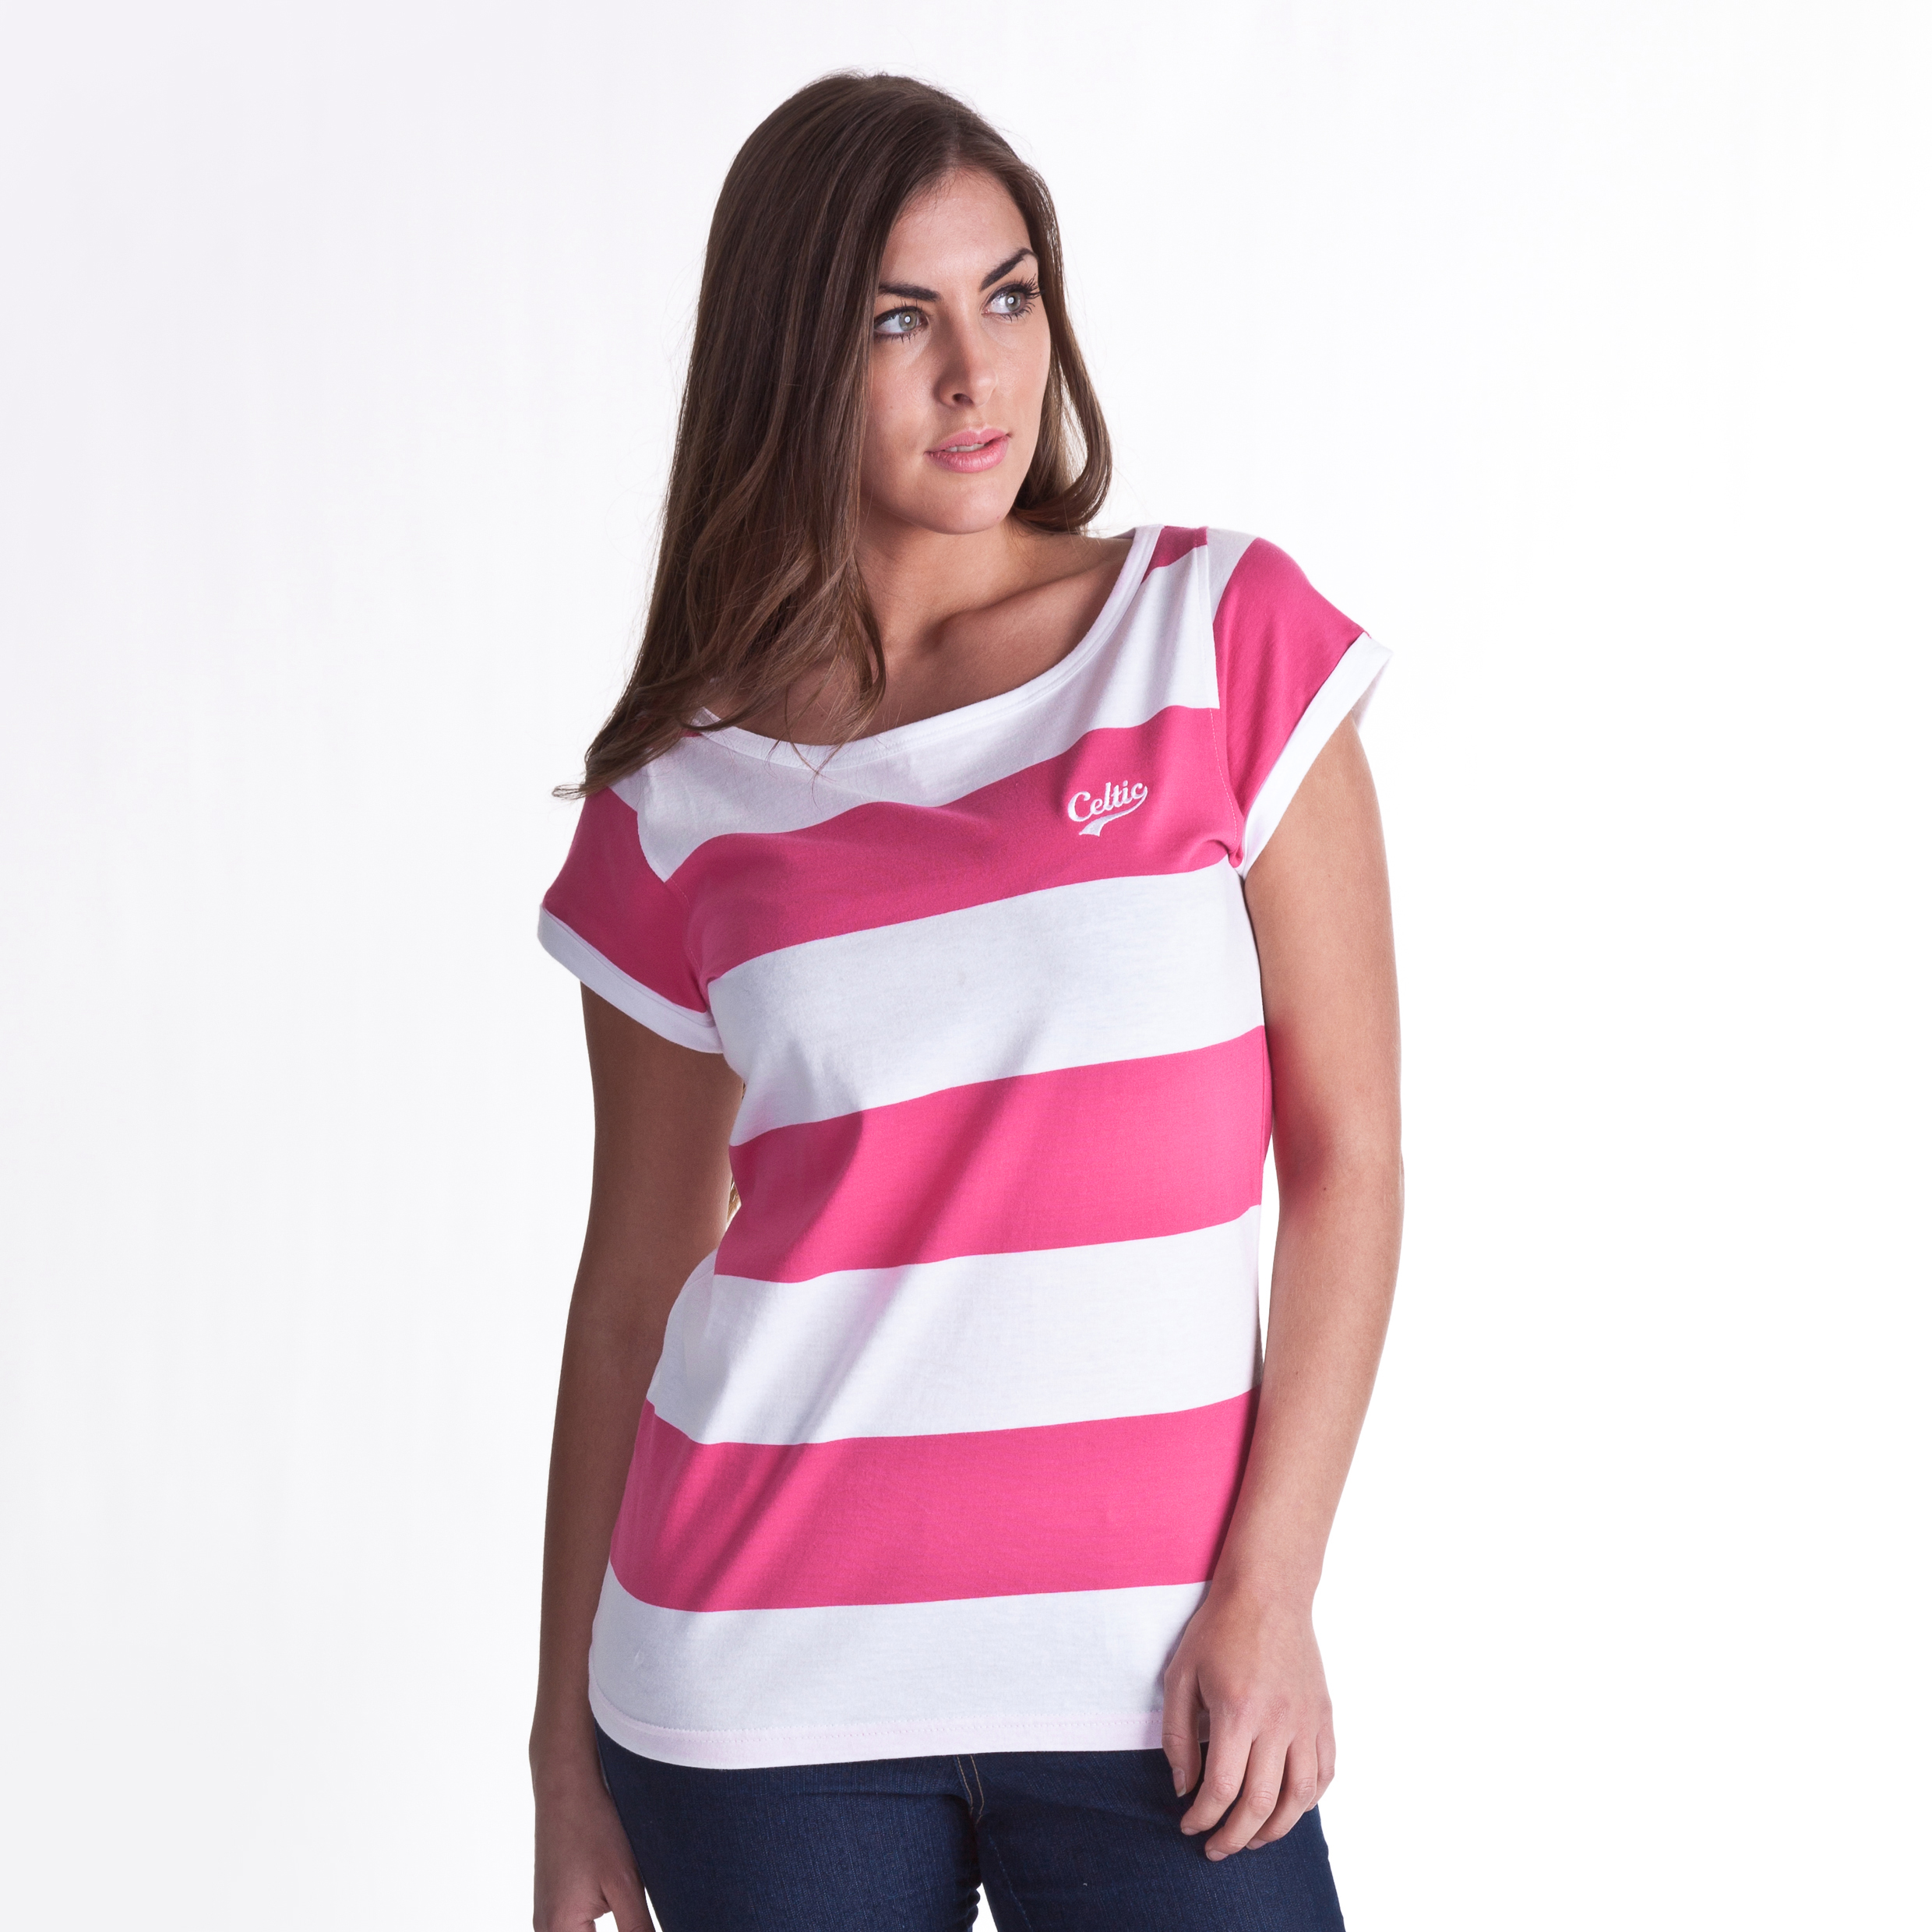 Celtic Block Stripe T-Shirt - Pink/White - Womens